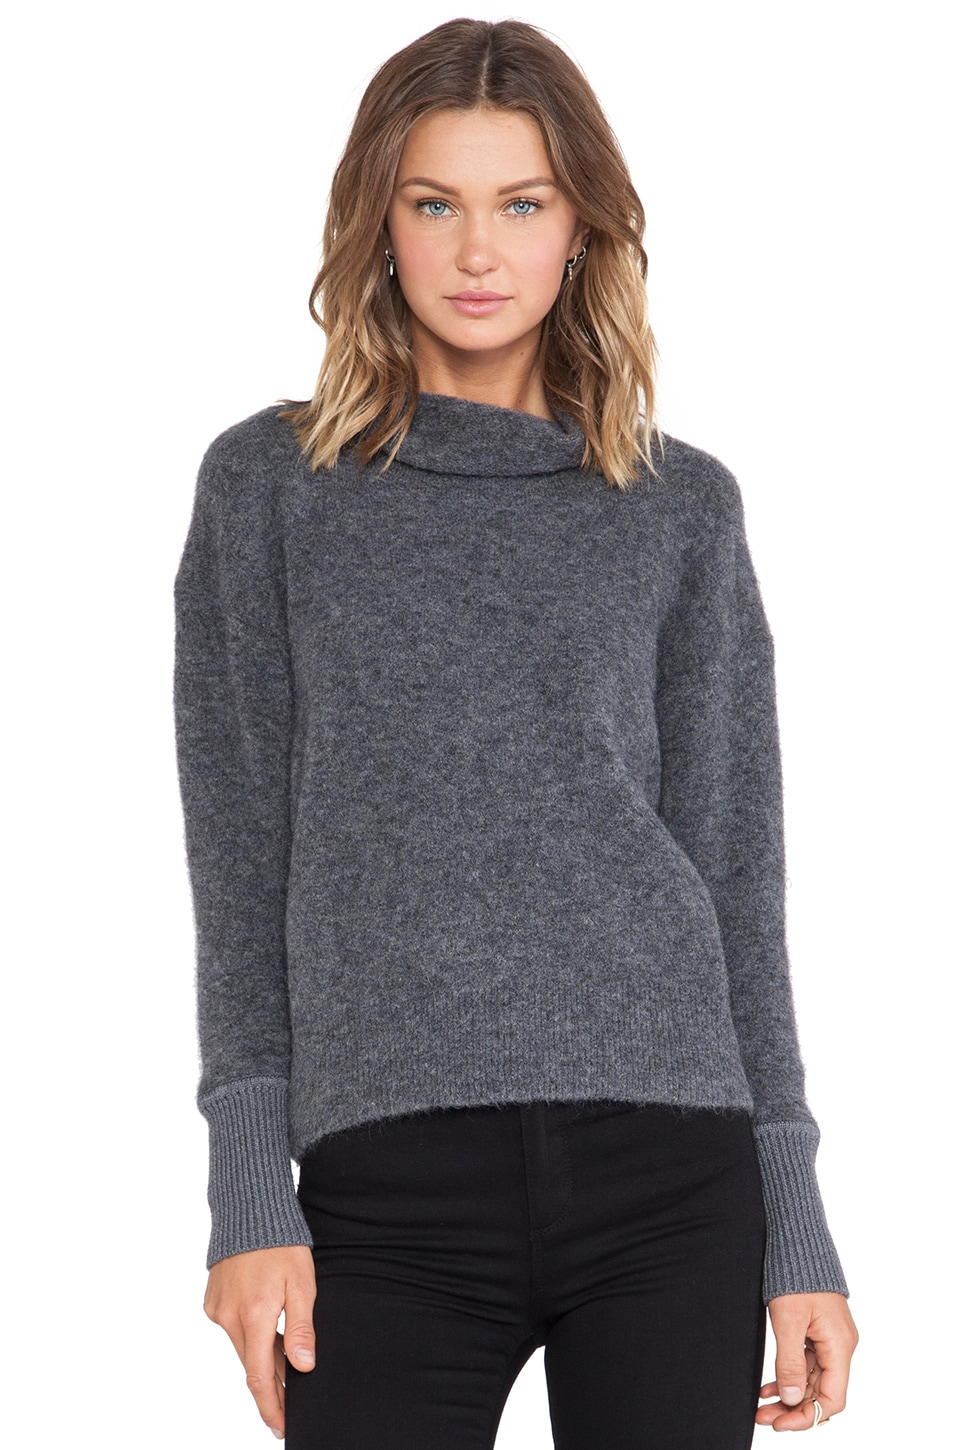 LOMA Corine Sweater in Grey Melange